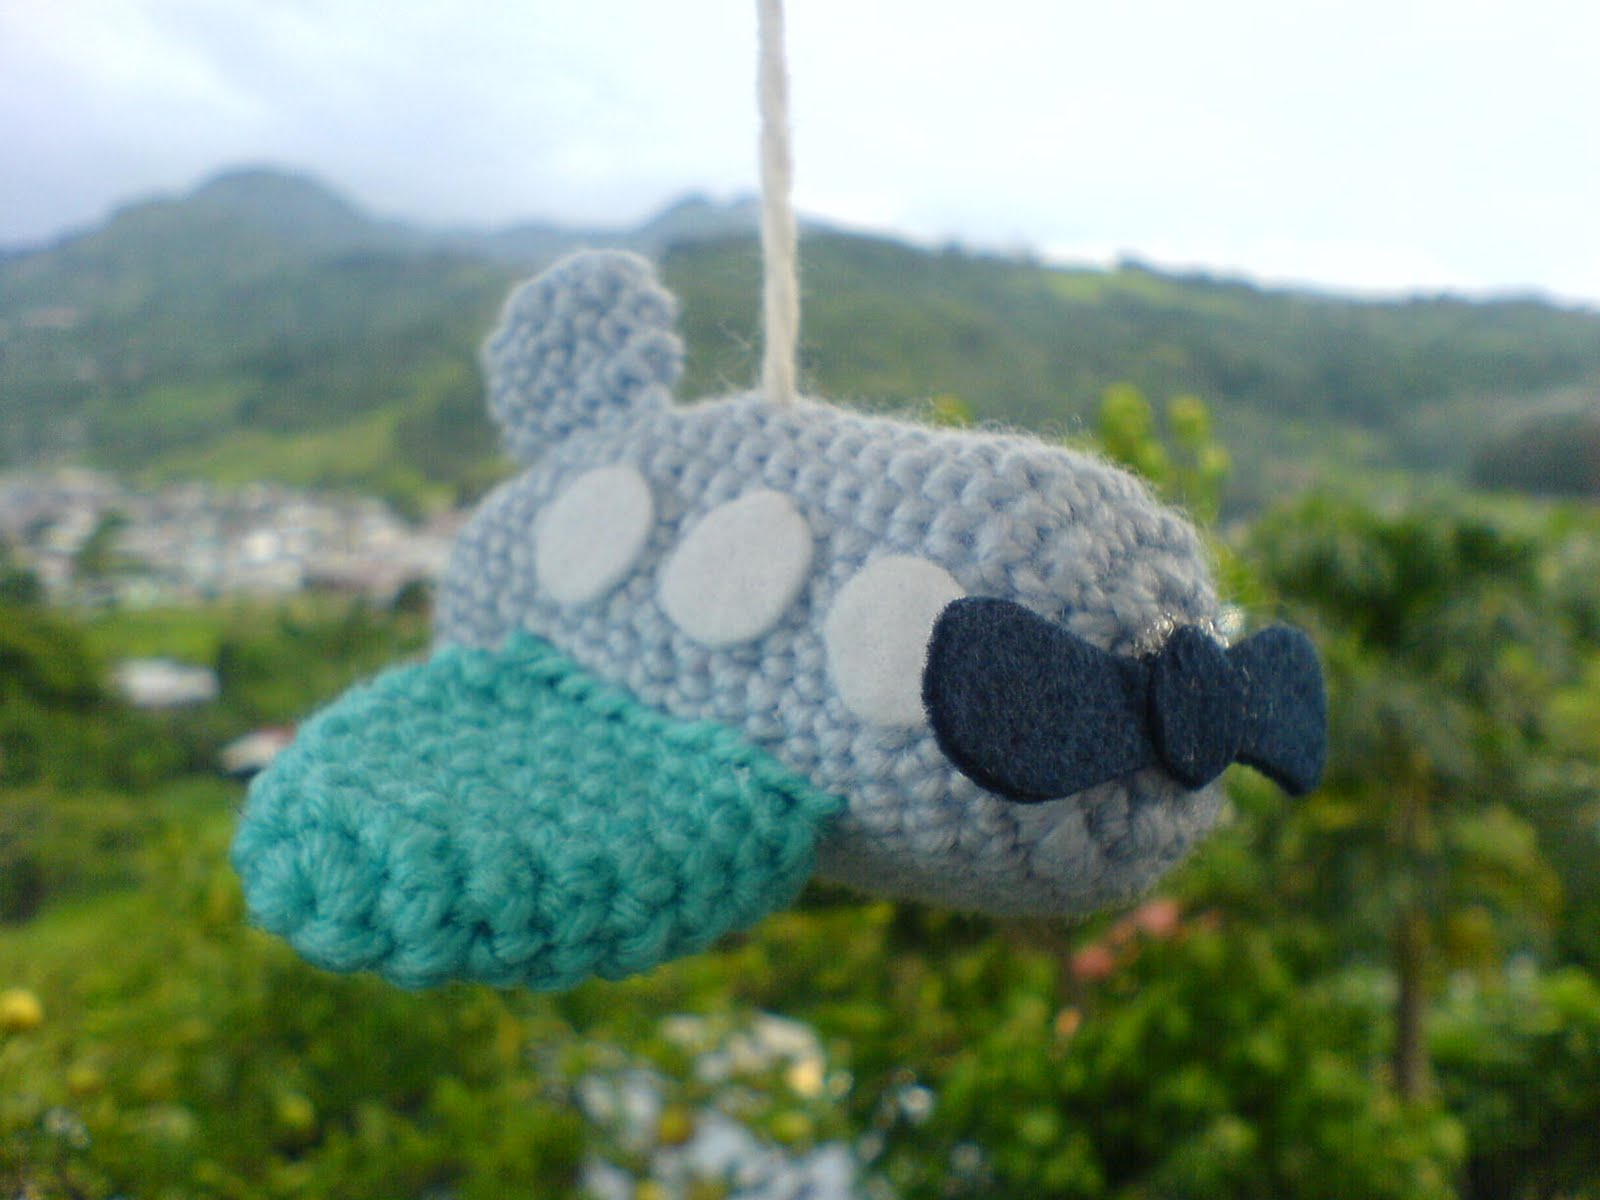 Amigurumi Plane Baby Mobile : 2000 Free Amigurumi Patterns: Fly to the Sky Plane Crochet ...